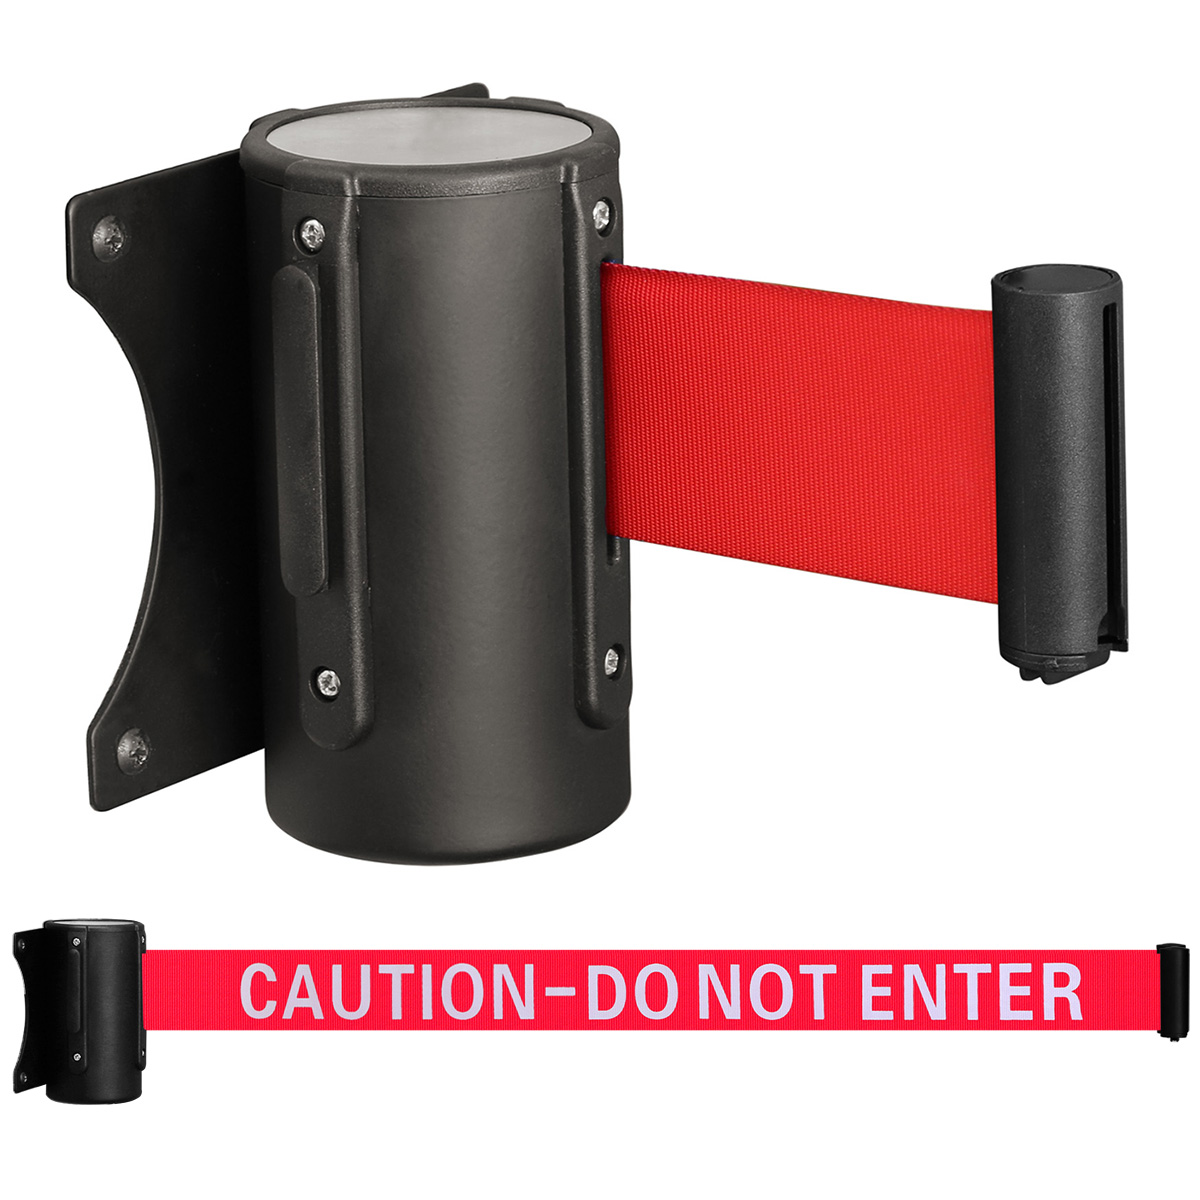 Wall Mounted Security Safety Crowd Control Barrier Door